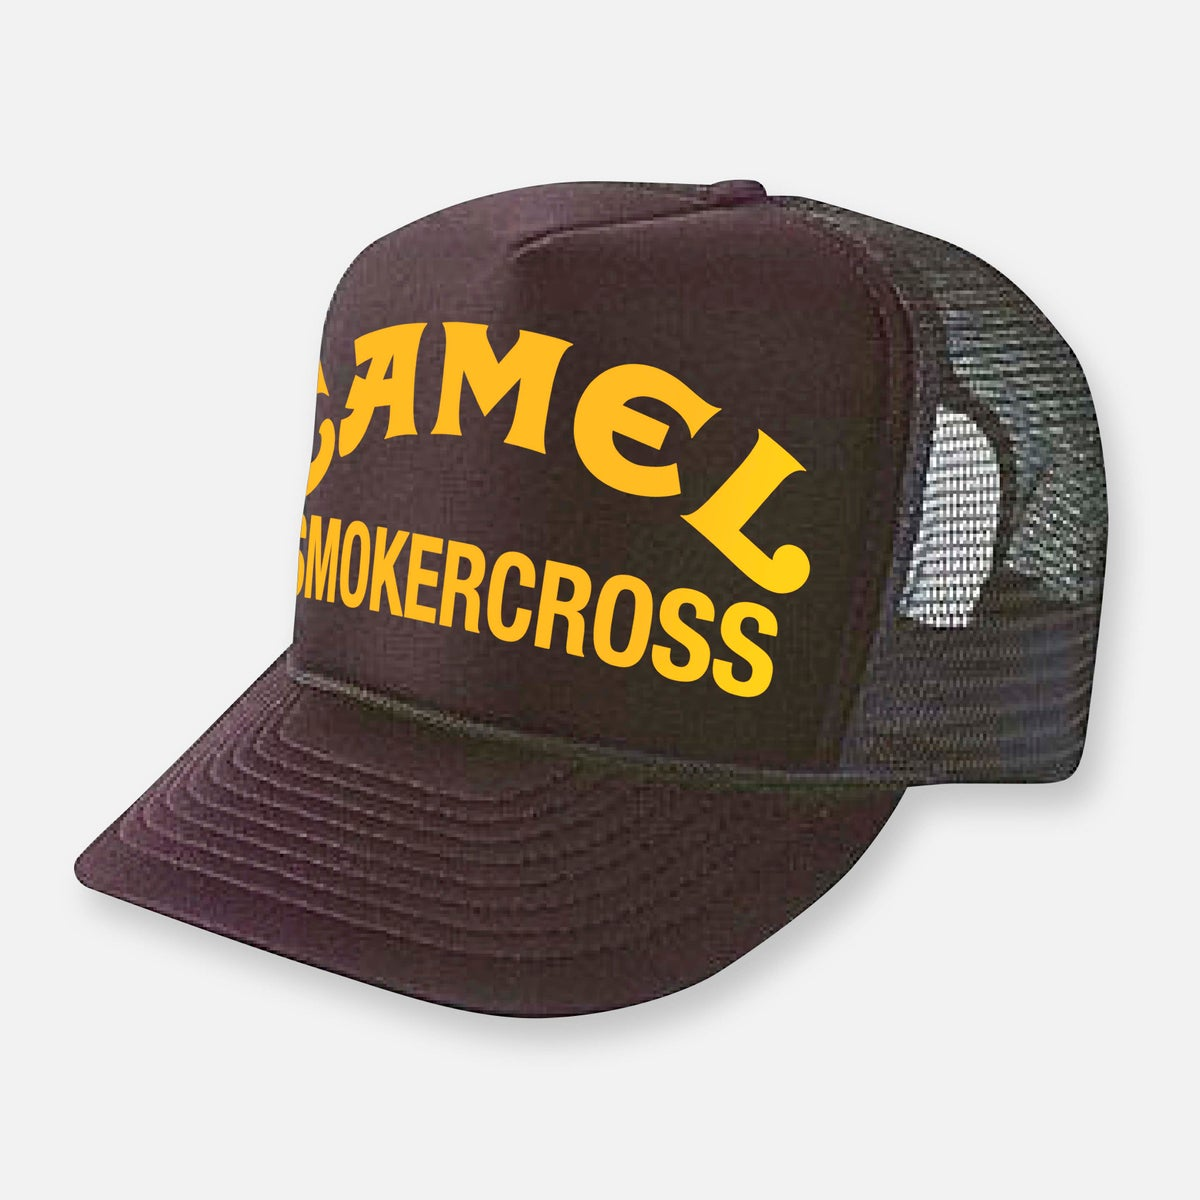 Image of CAMEL SMOKERCROSS TALLBOY